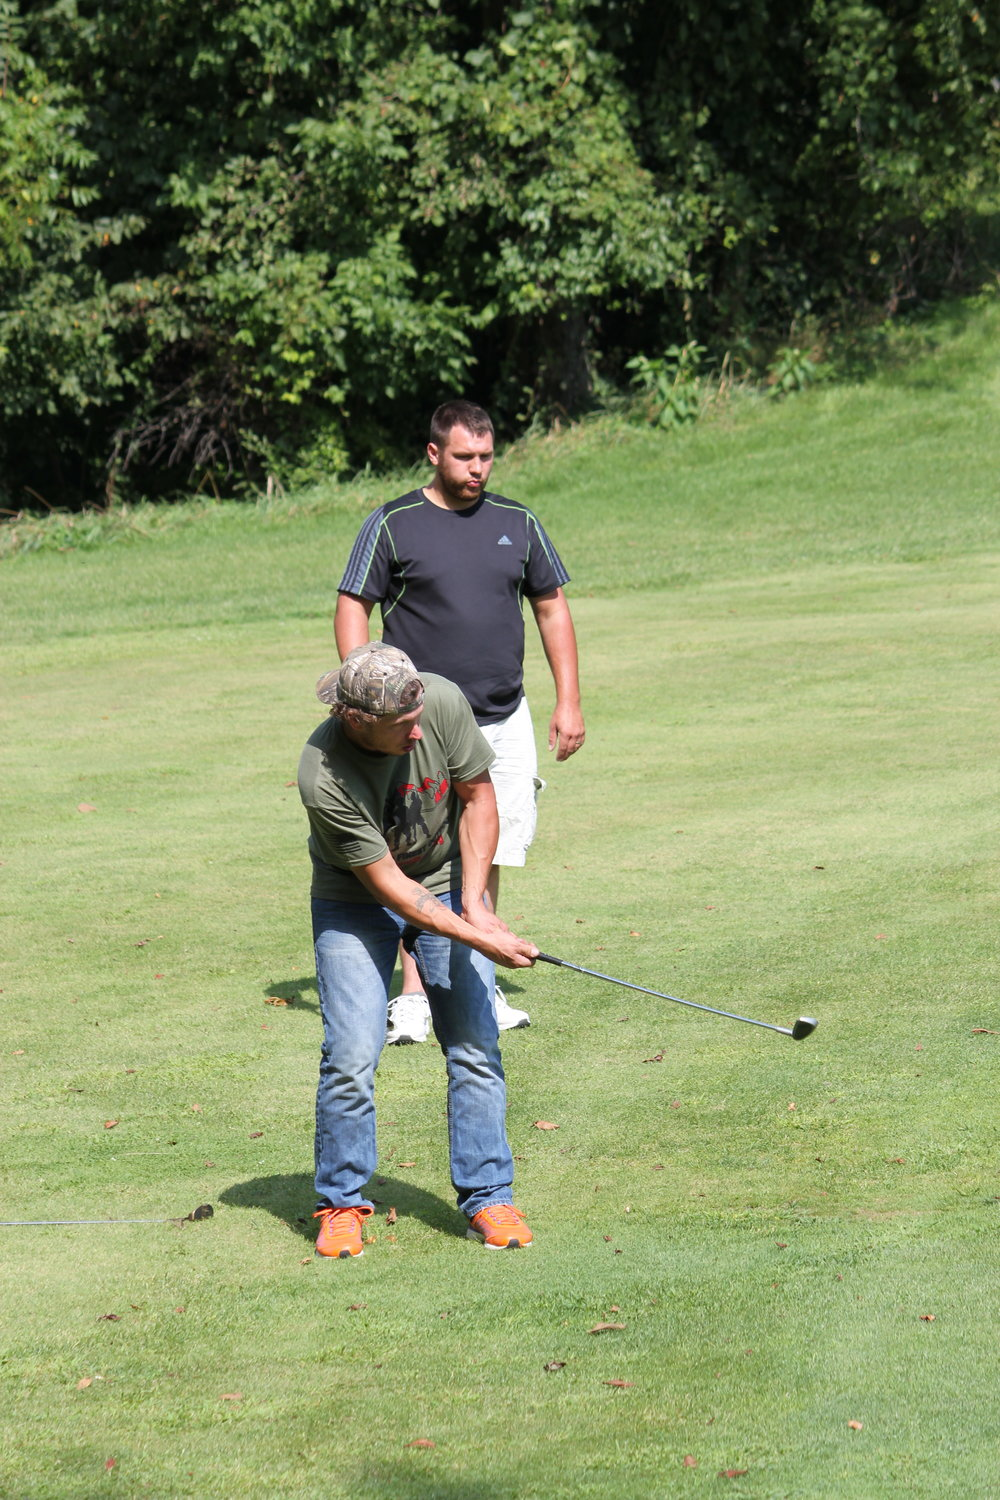 IMG_2233 golfer FFO Golf Outing 2015 copy.JPG